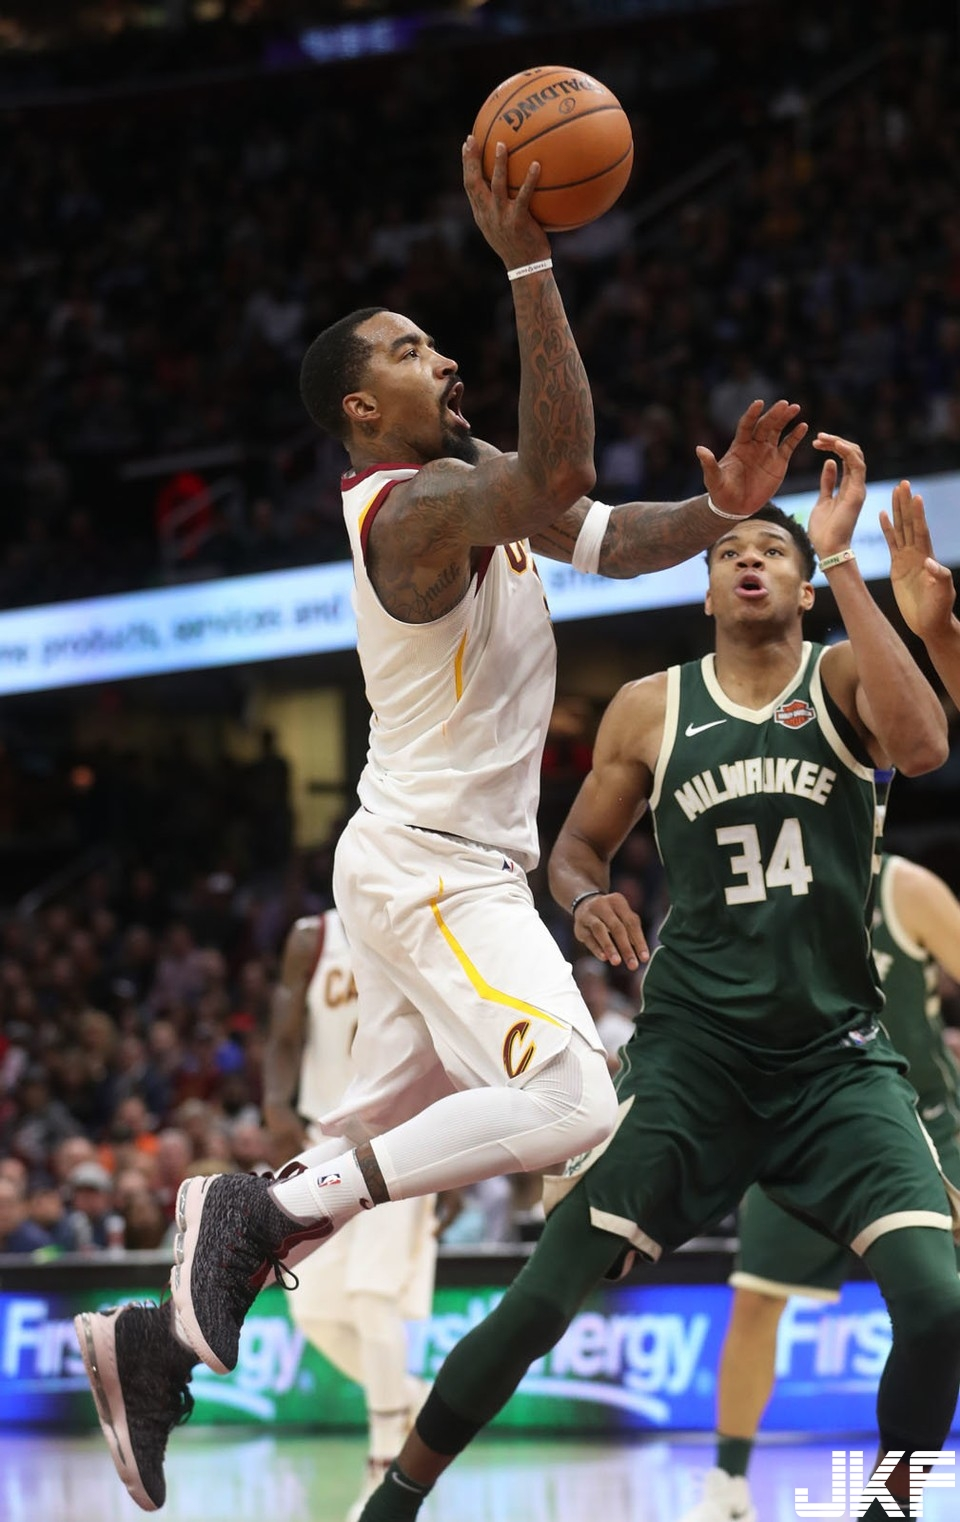 cleveland-cavaliers-vs-milwaukee-bucks-november-7-2017-166fe30e5e9b3d51.jpg